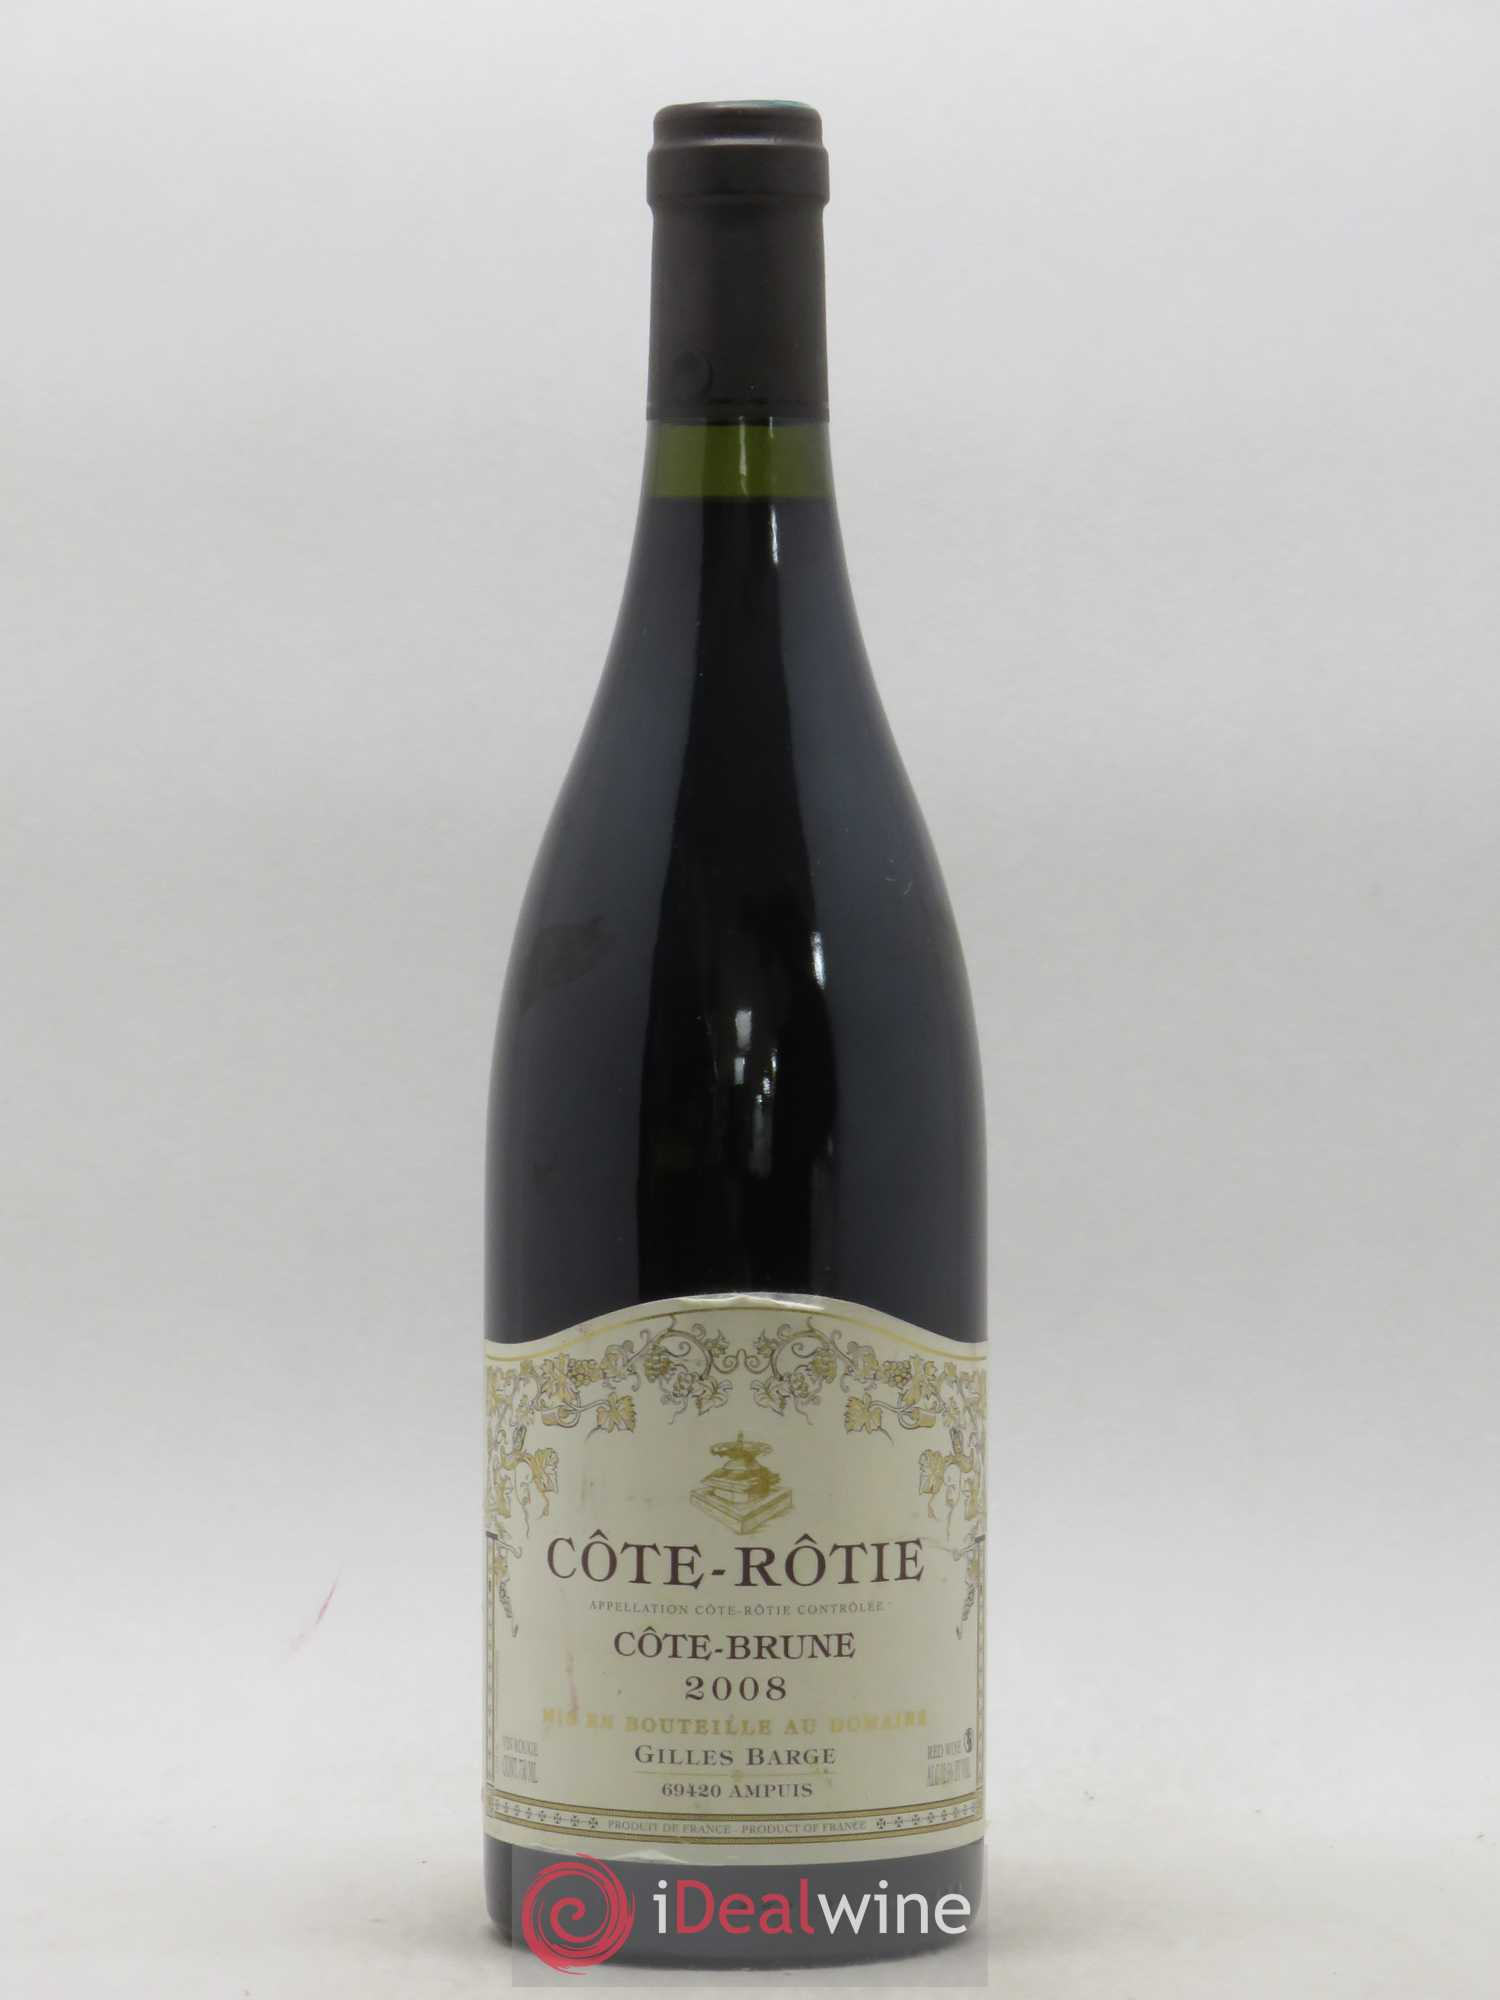 Côte-Rôtie Cote Brune Gilles Barge 2008 - Lot of 1 Bottle